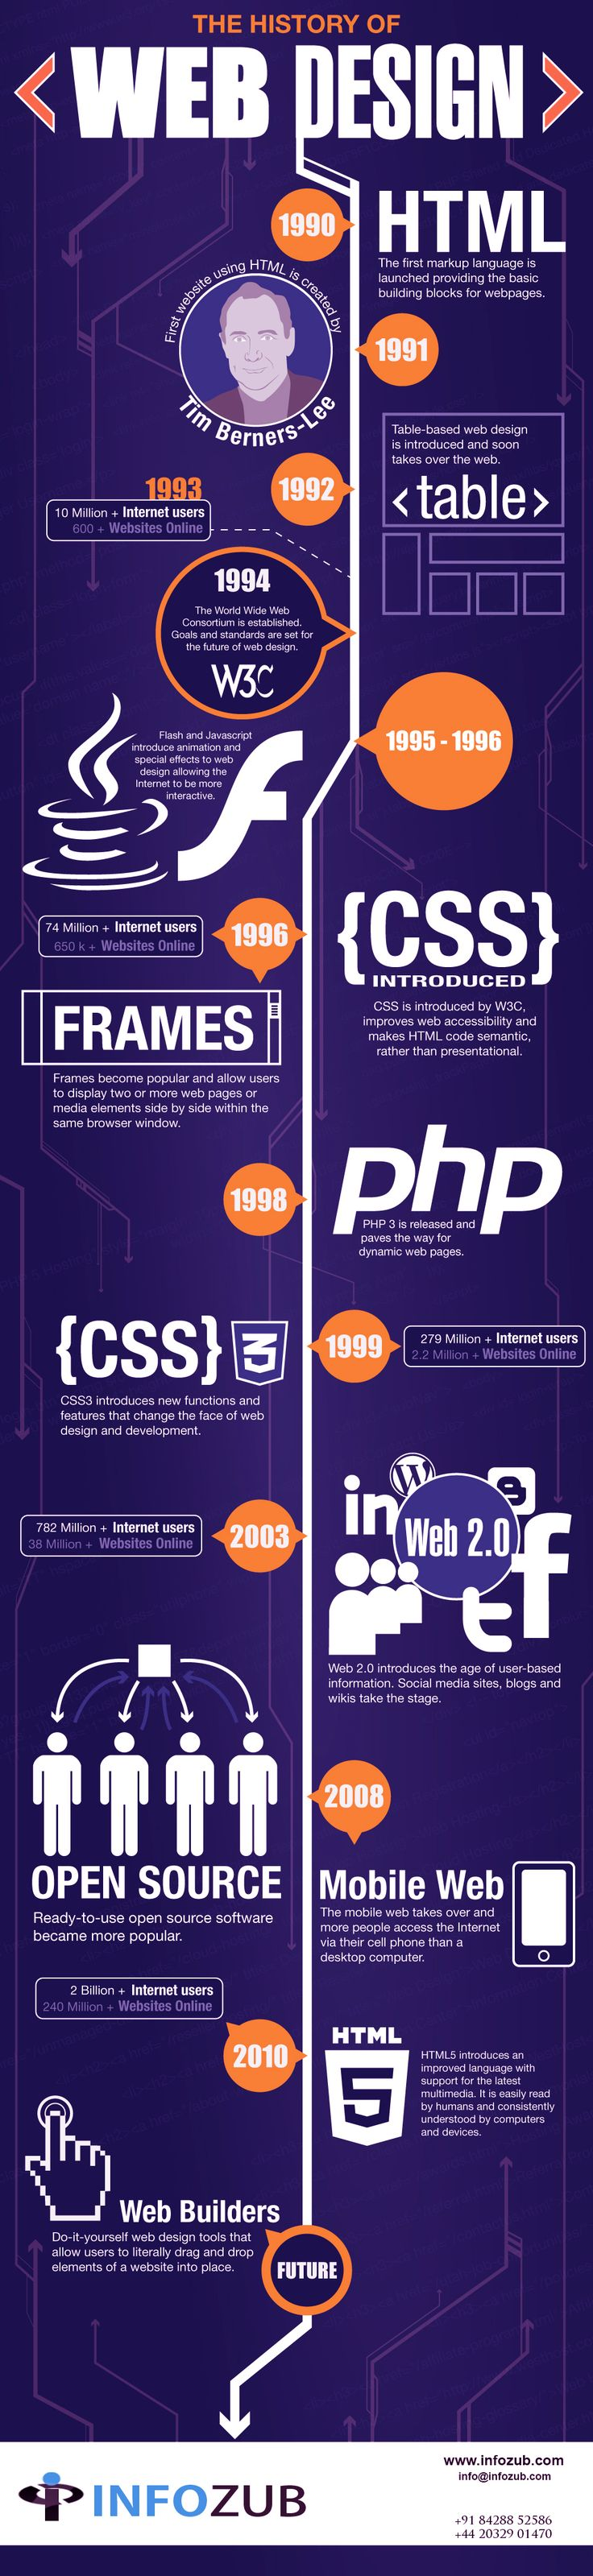 An Infographic about the History of Web Design from 1990 to the Future by Infozub. This infographic demonstrates the Past to Future of website designing.